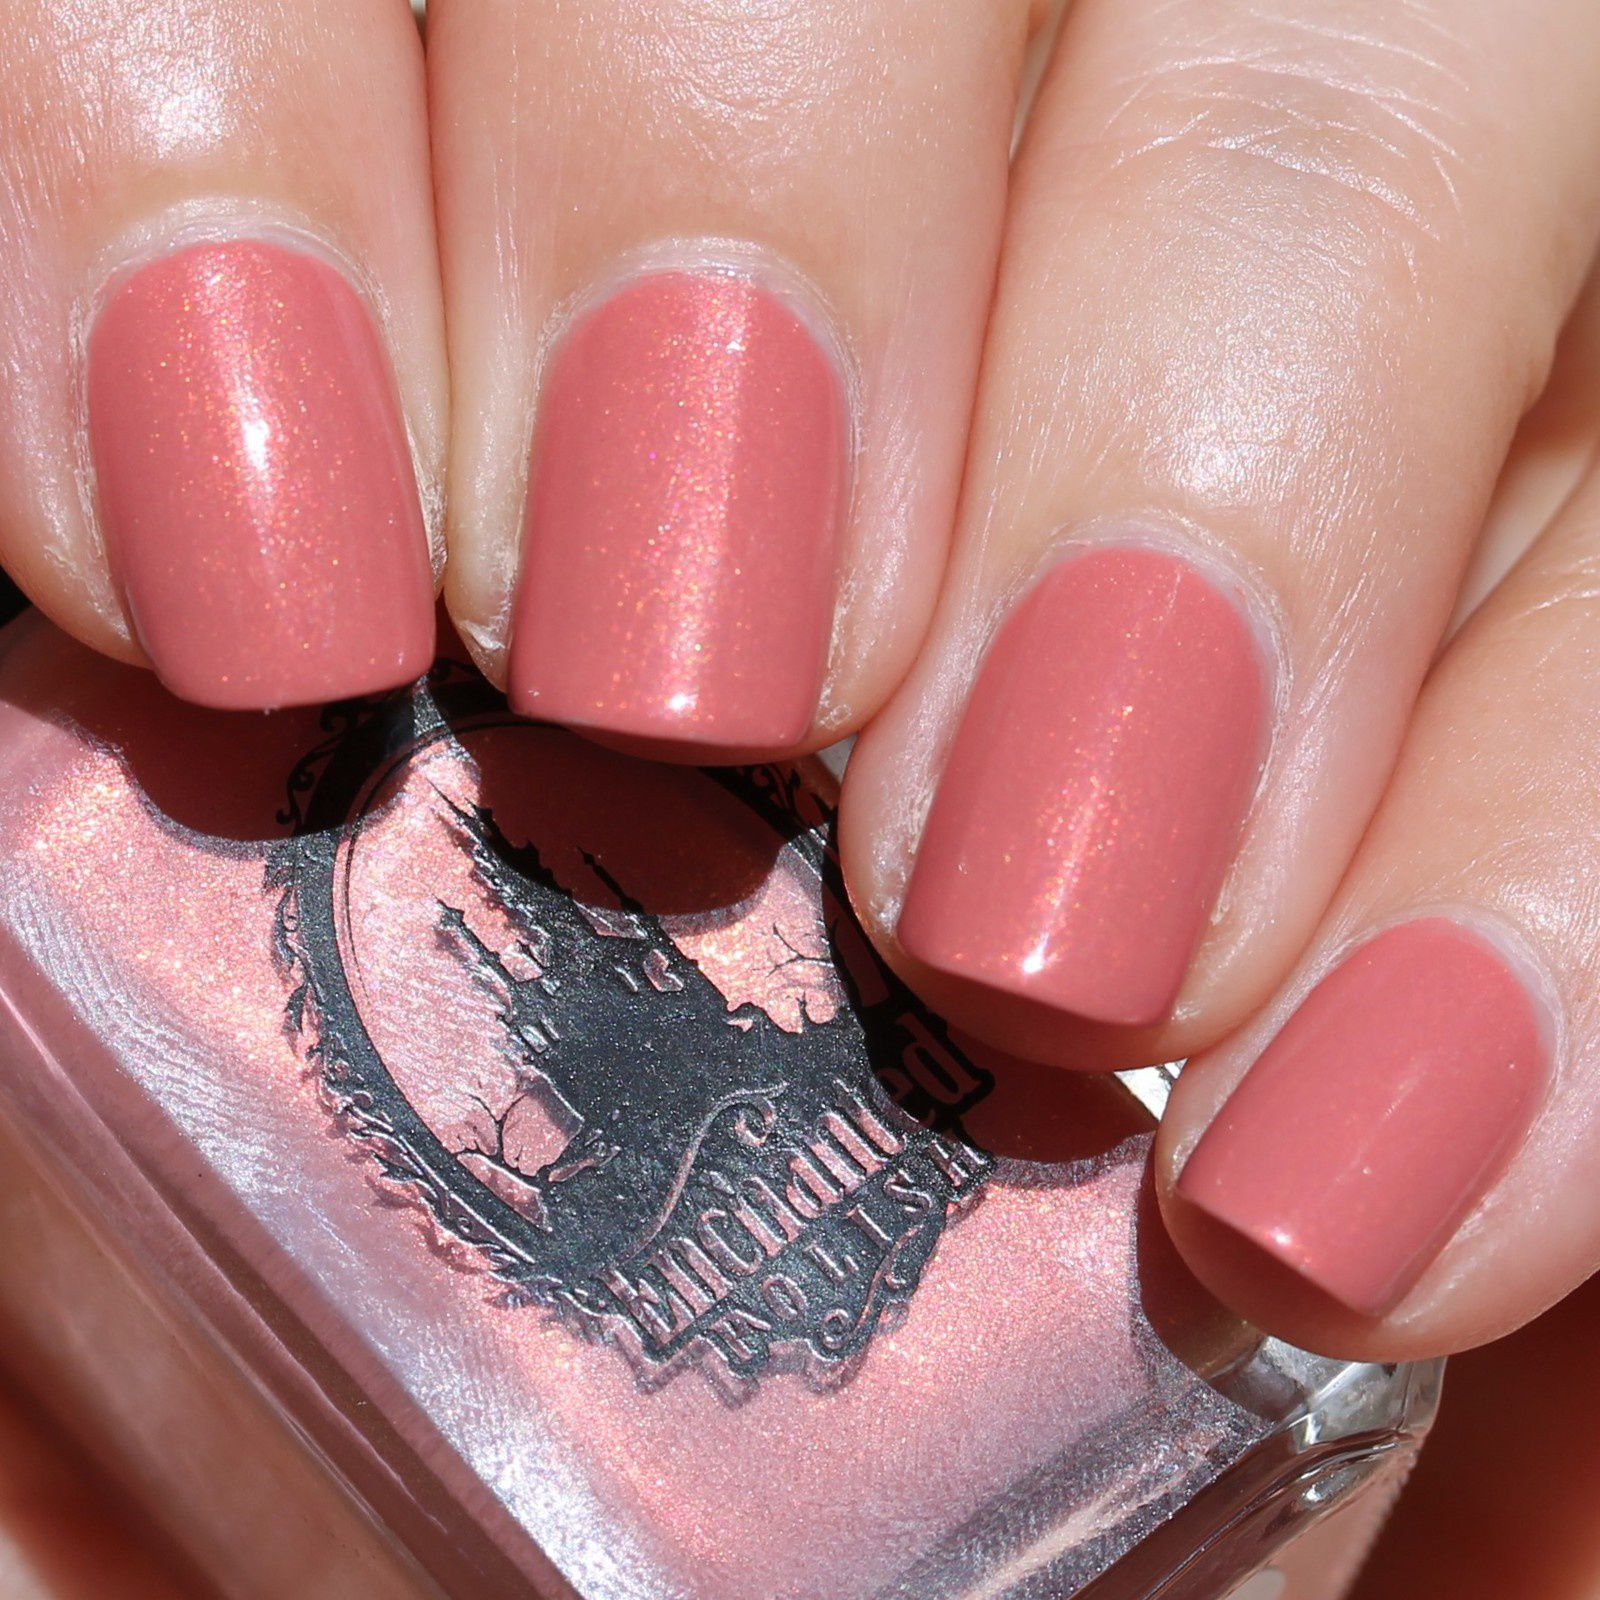 Essie Protein Base Coat / Enchanted Polish Rustic Rose / Native War Paints Hurry, Hurry! Top Coat